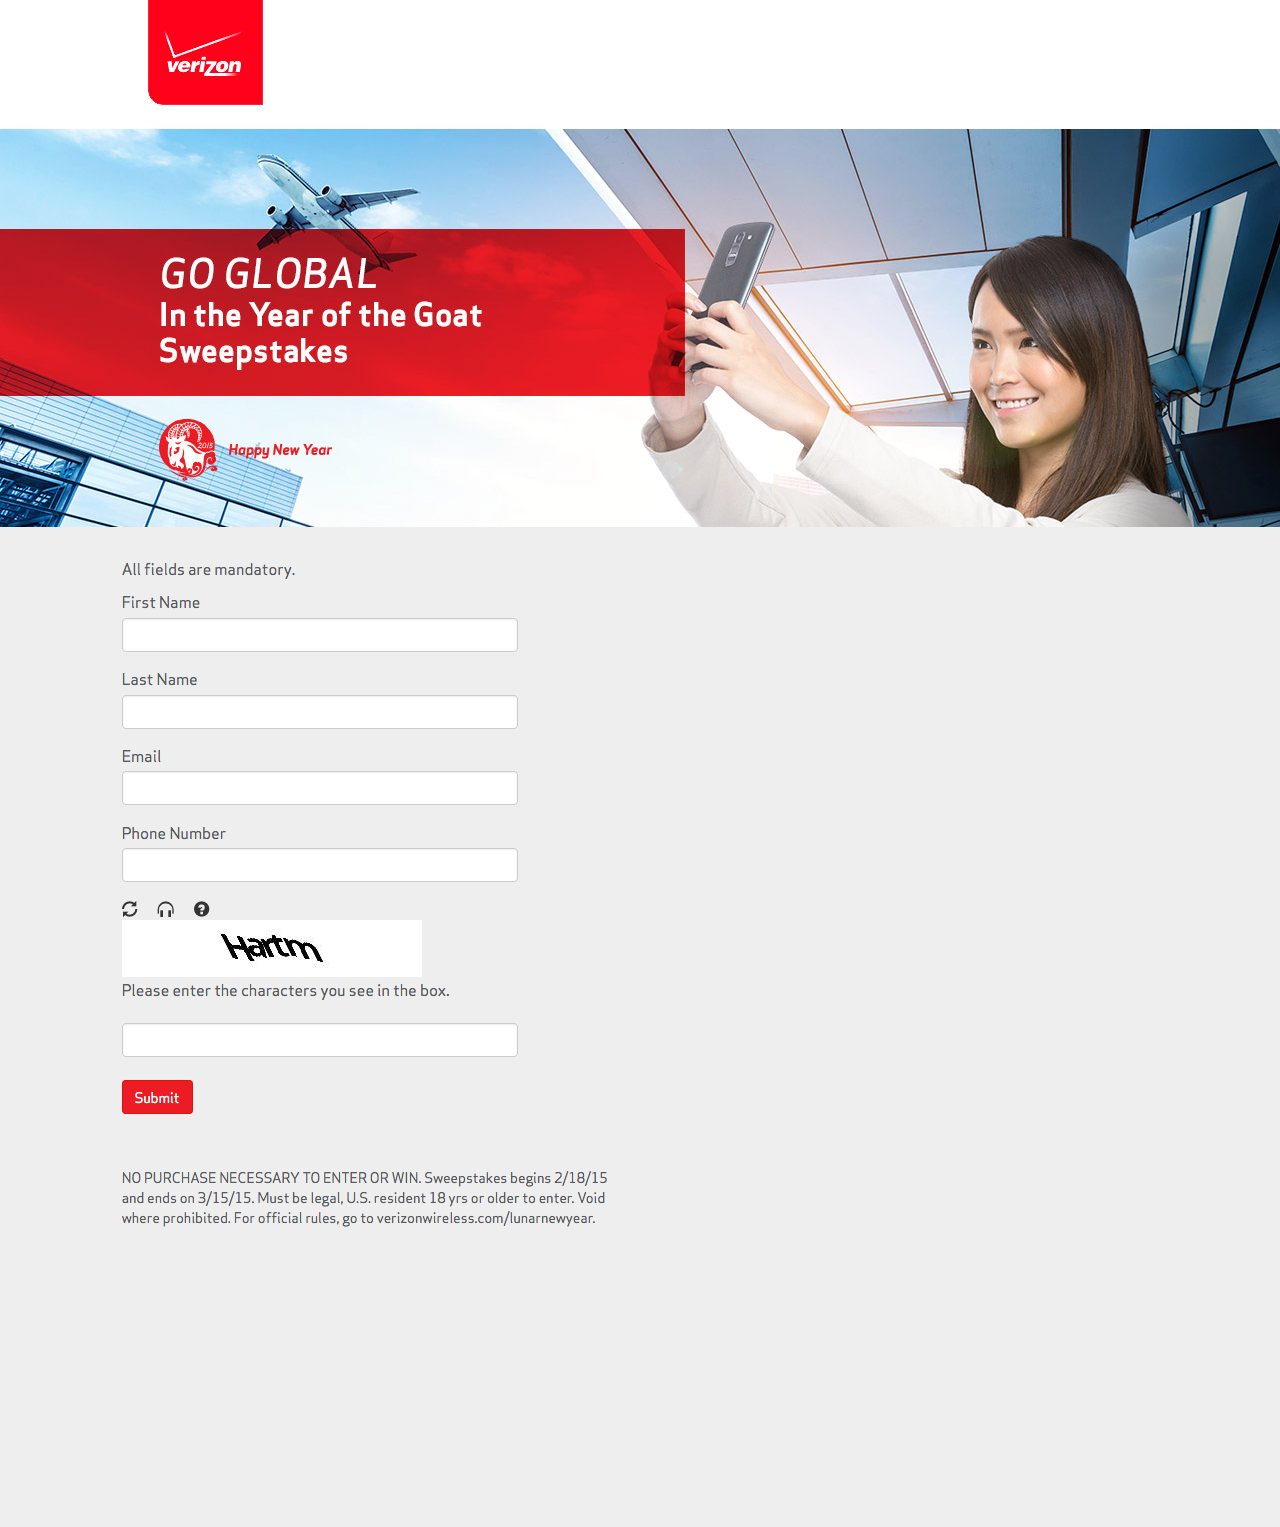 Verizon Go Global 2015-02-20 21-49-08